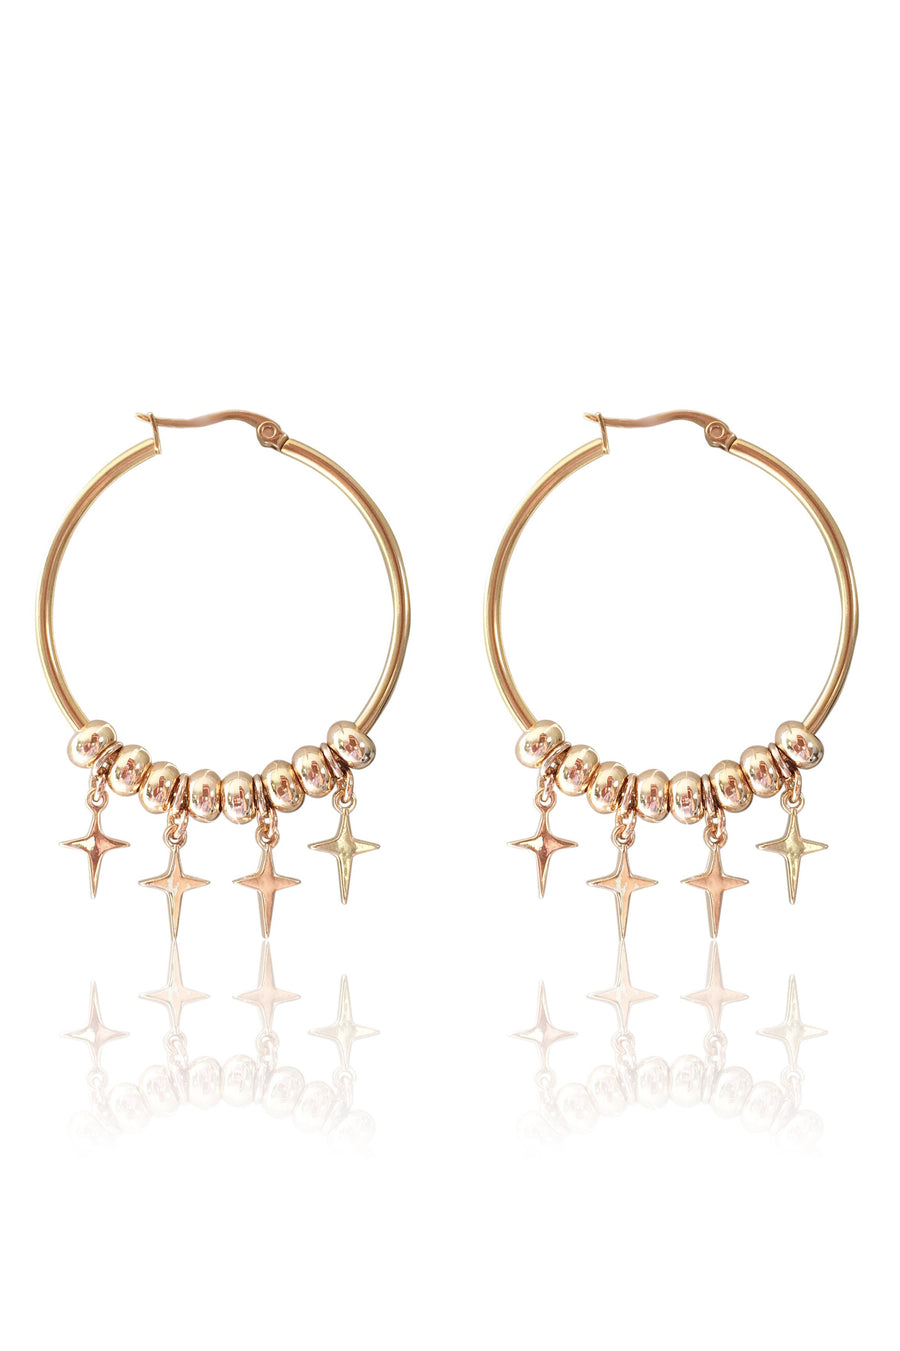 Jasmine - Large Hoop Earrings